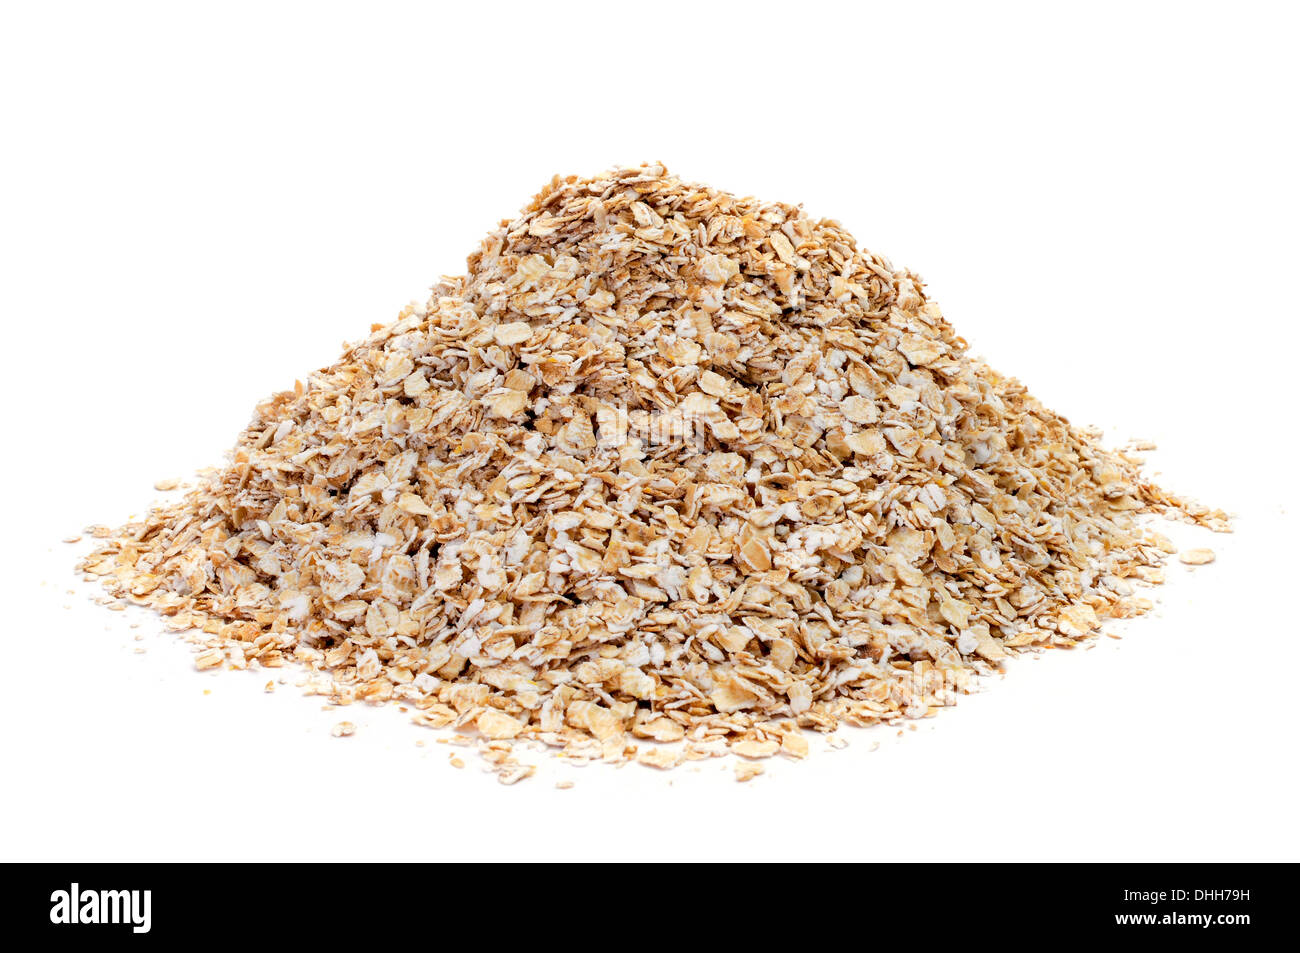 a pile of rolled oats on a white background - Stock Image